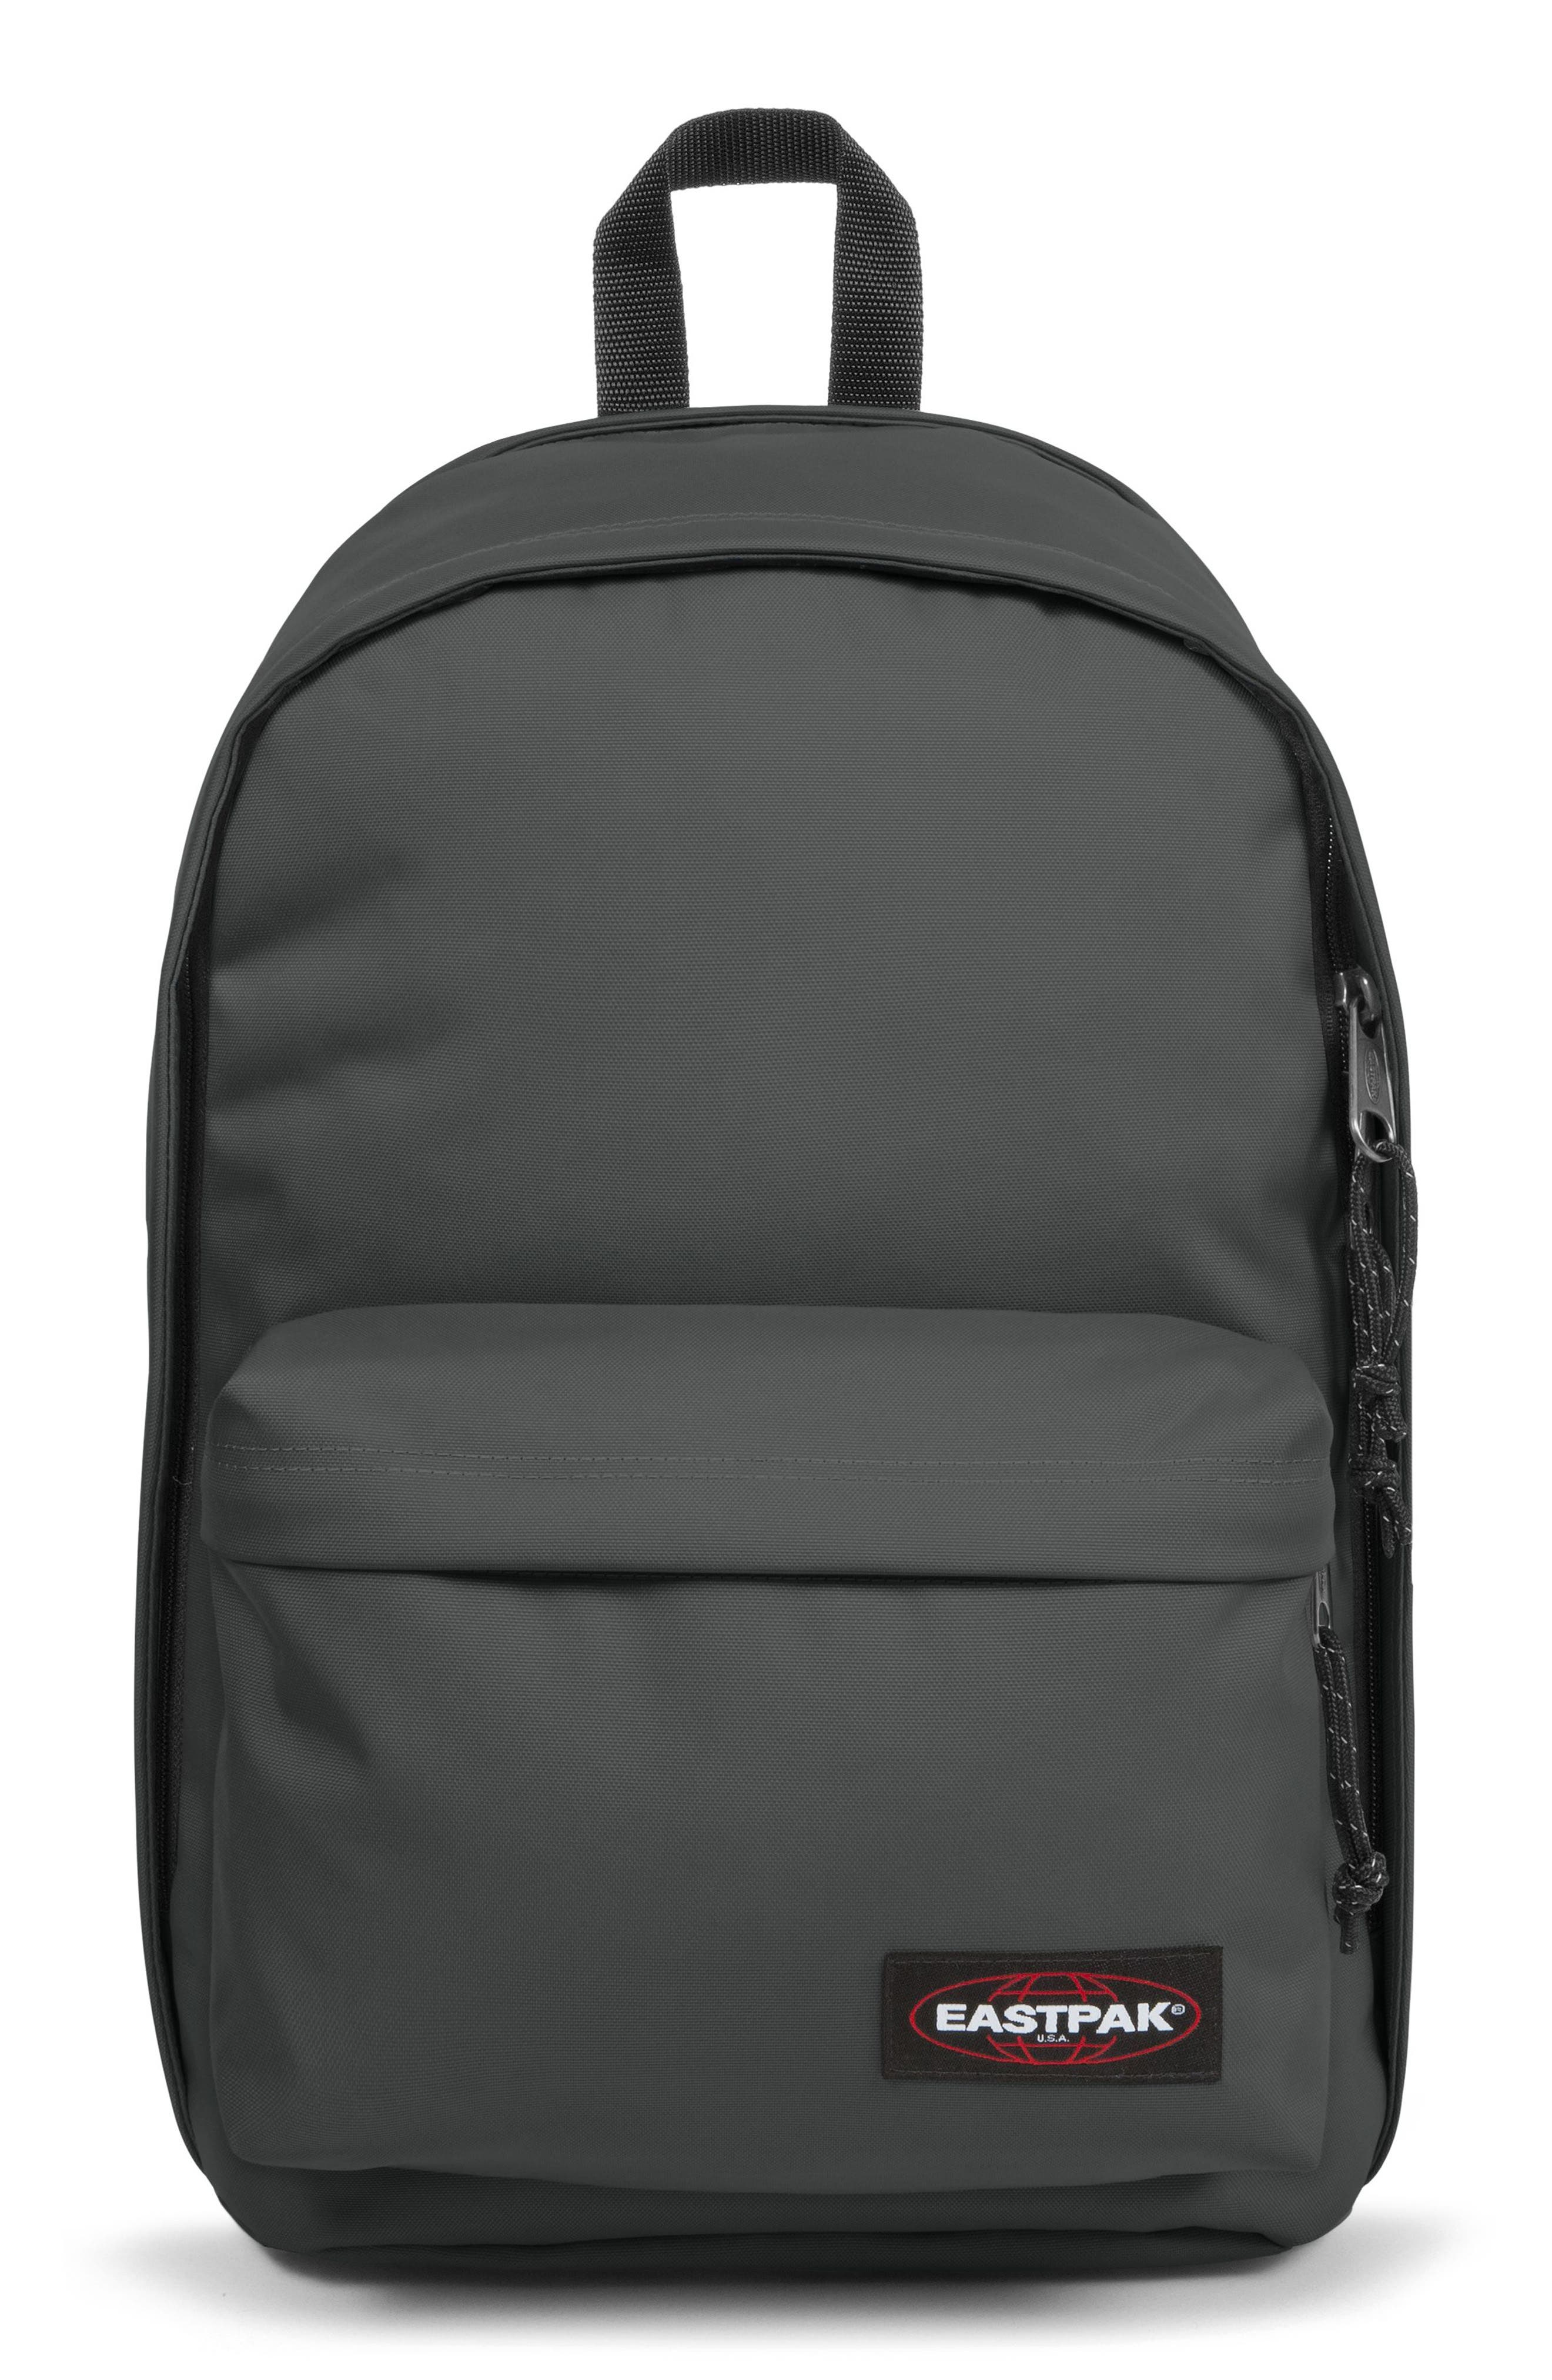 EASTPAK, Back to Work Backpack, Main thumbnail 1, color, GOOD GREY